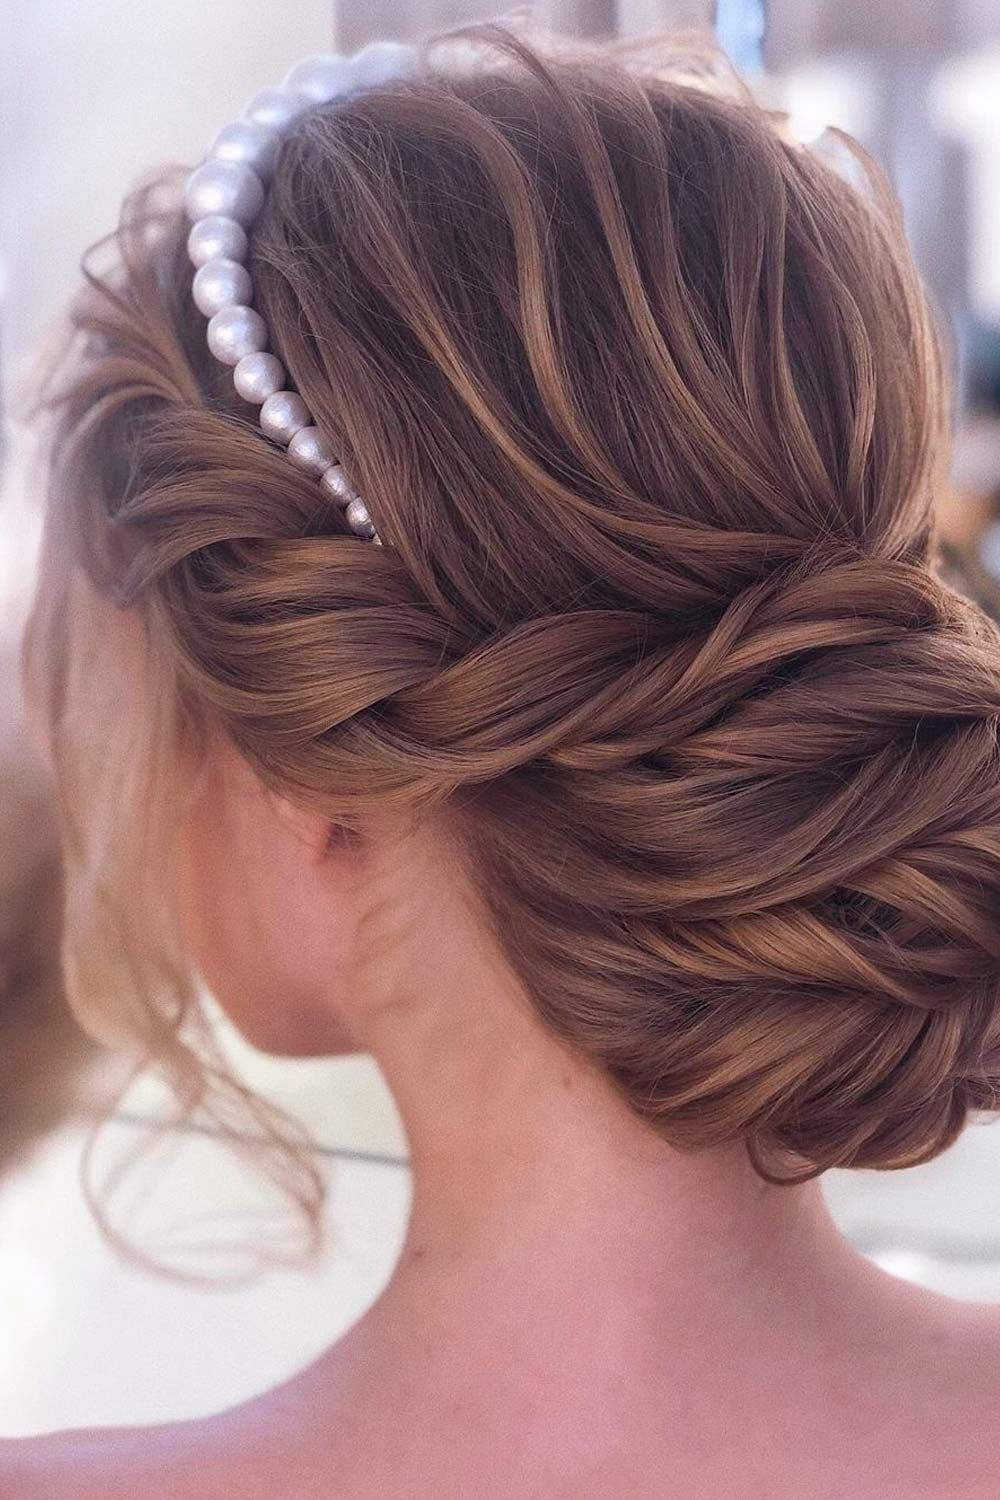 Updo Styles With Pearl Headband